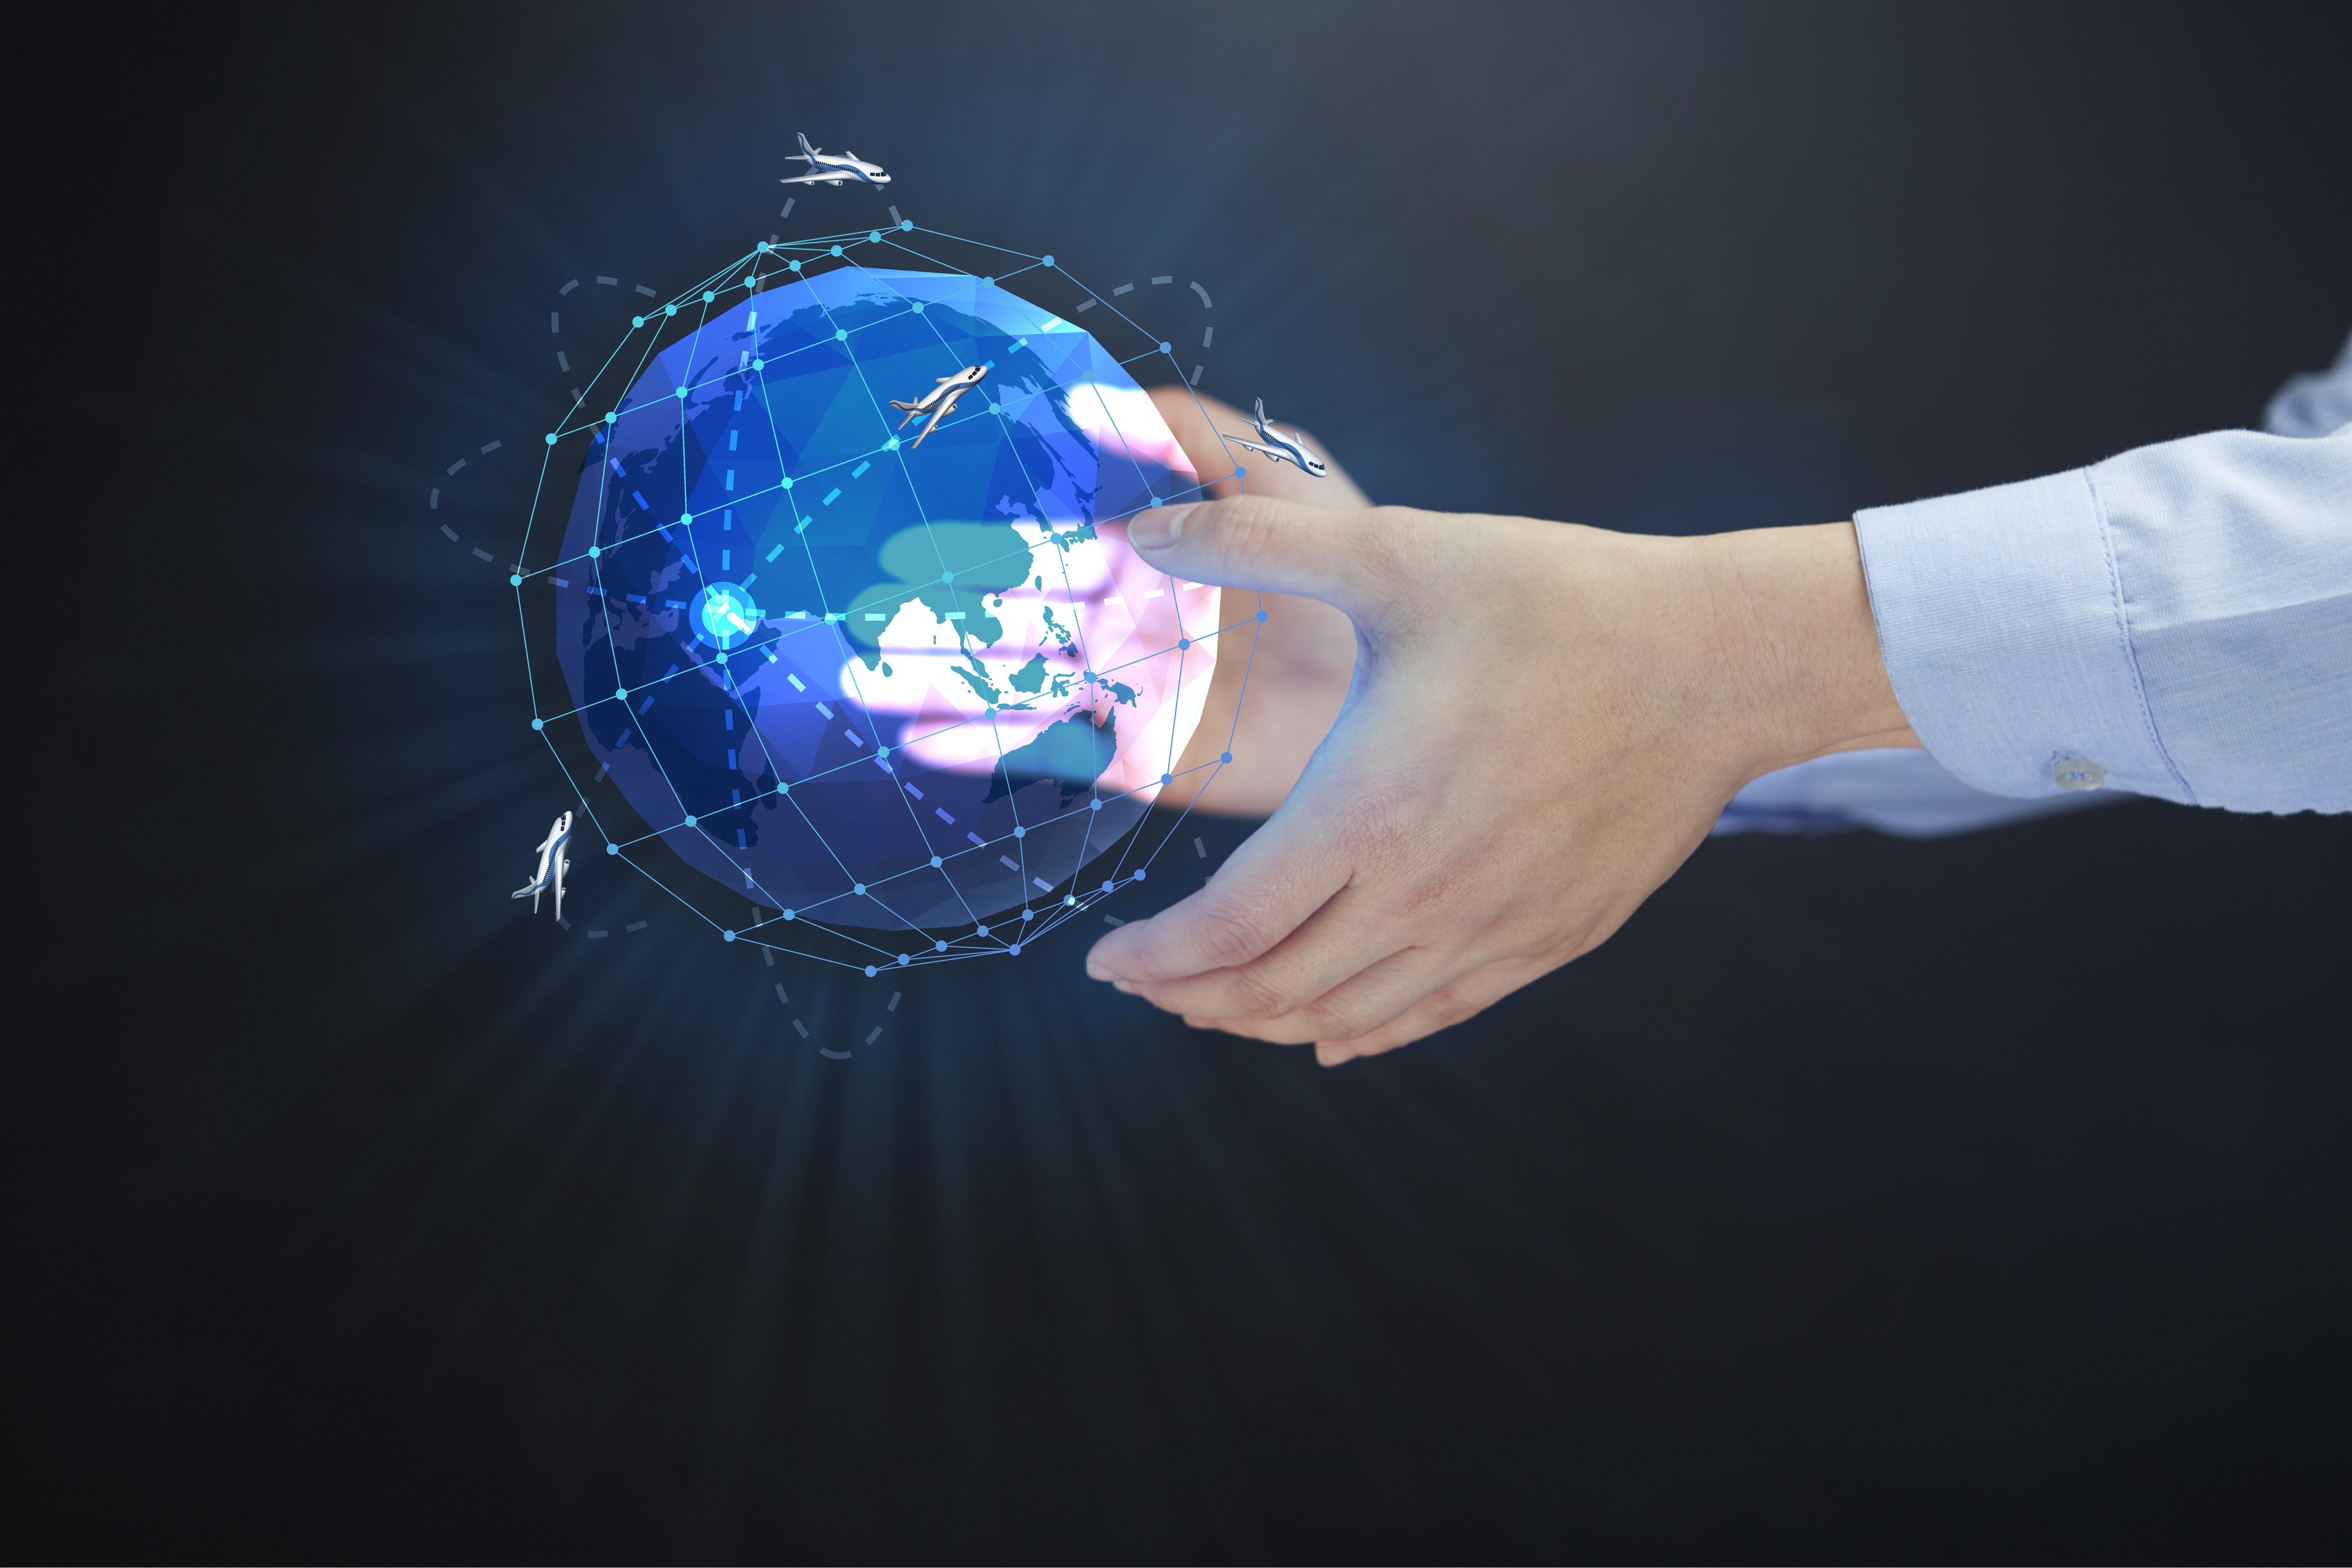 Hands hold a holographic globe in midair.